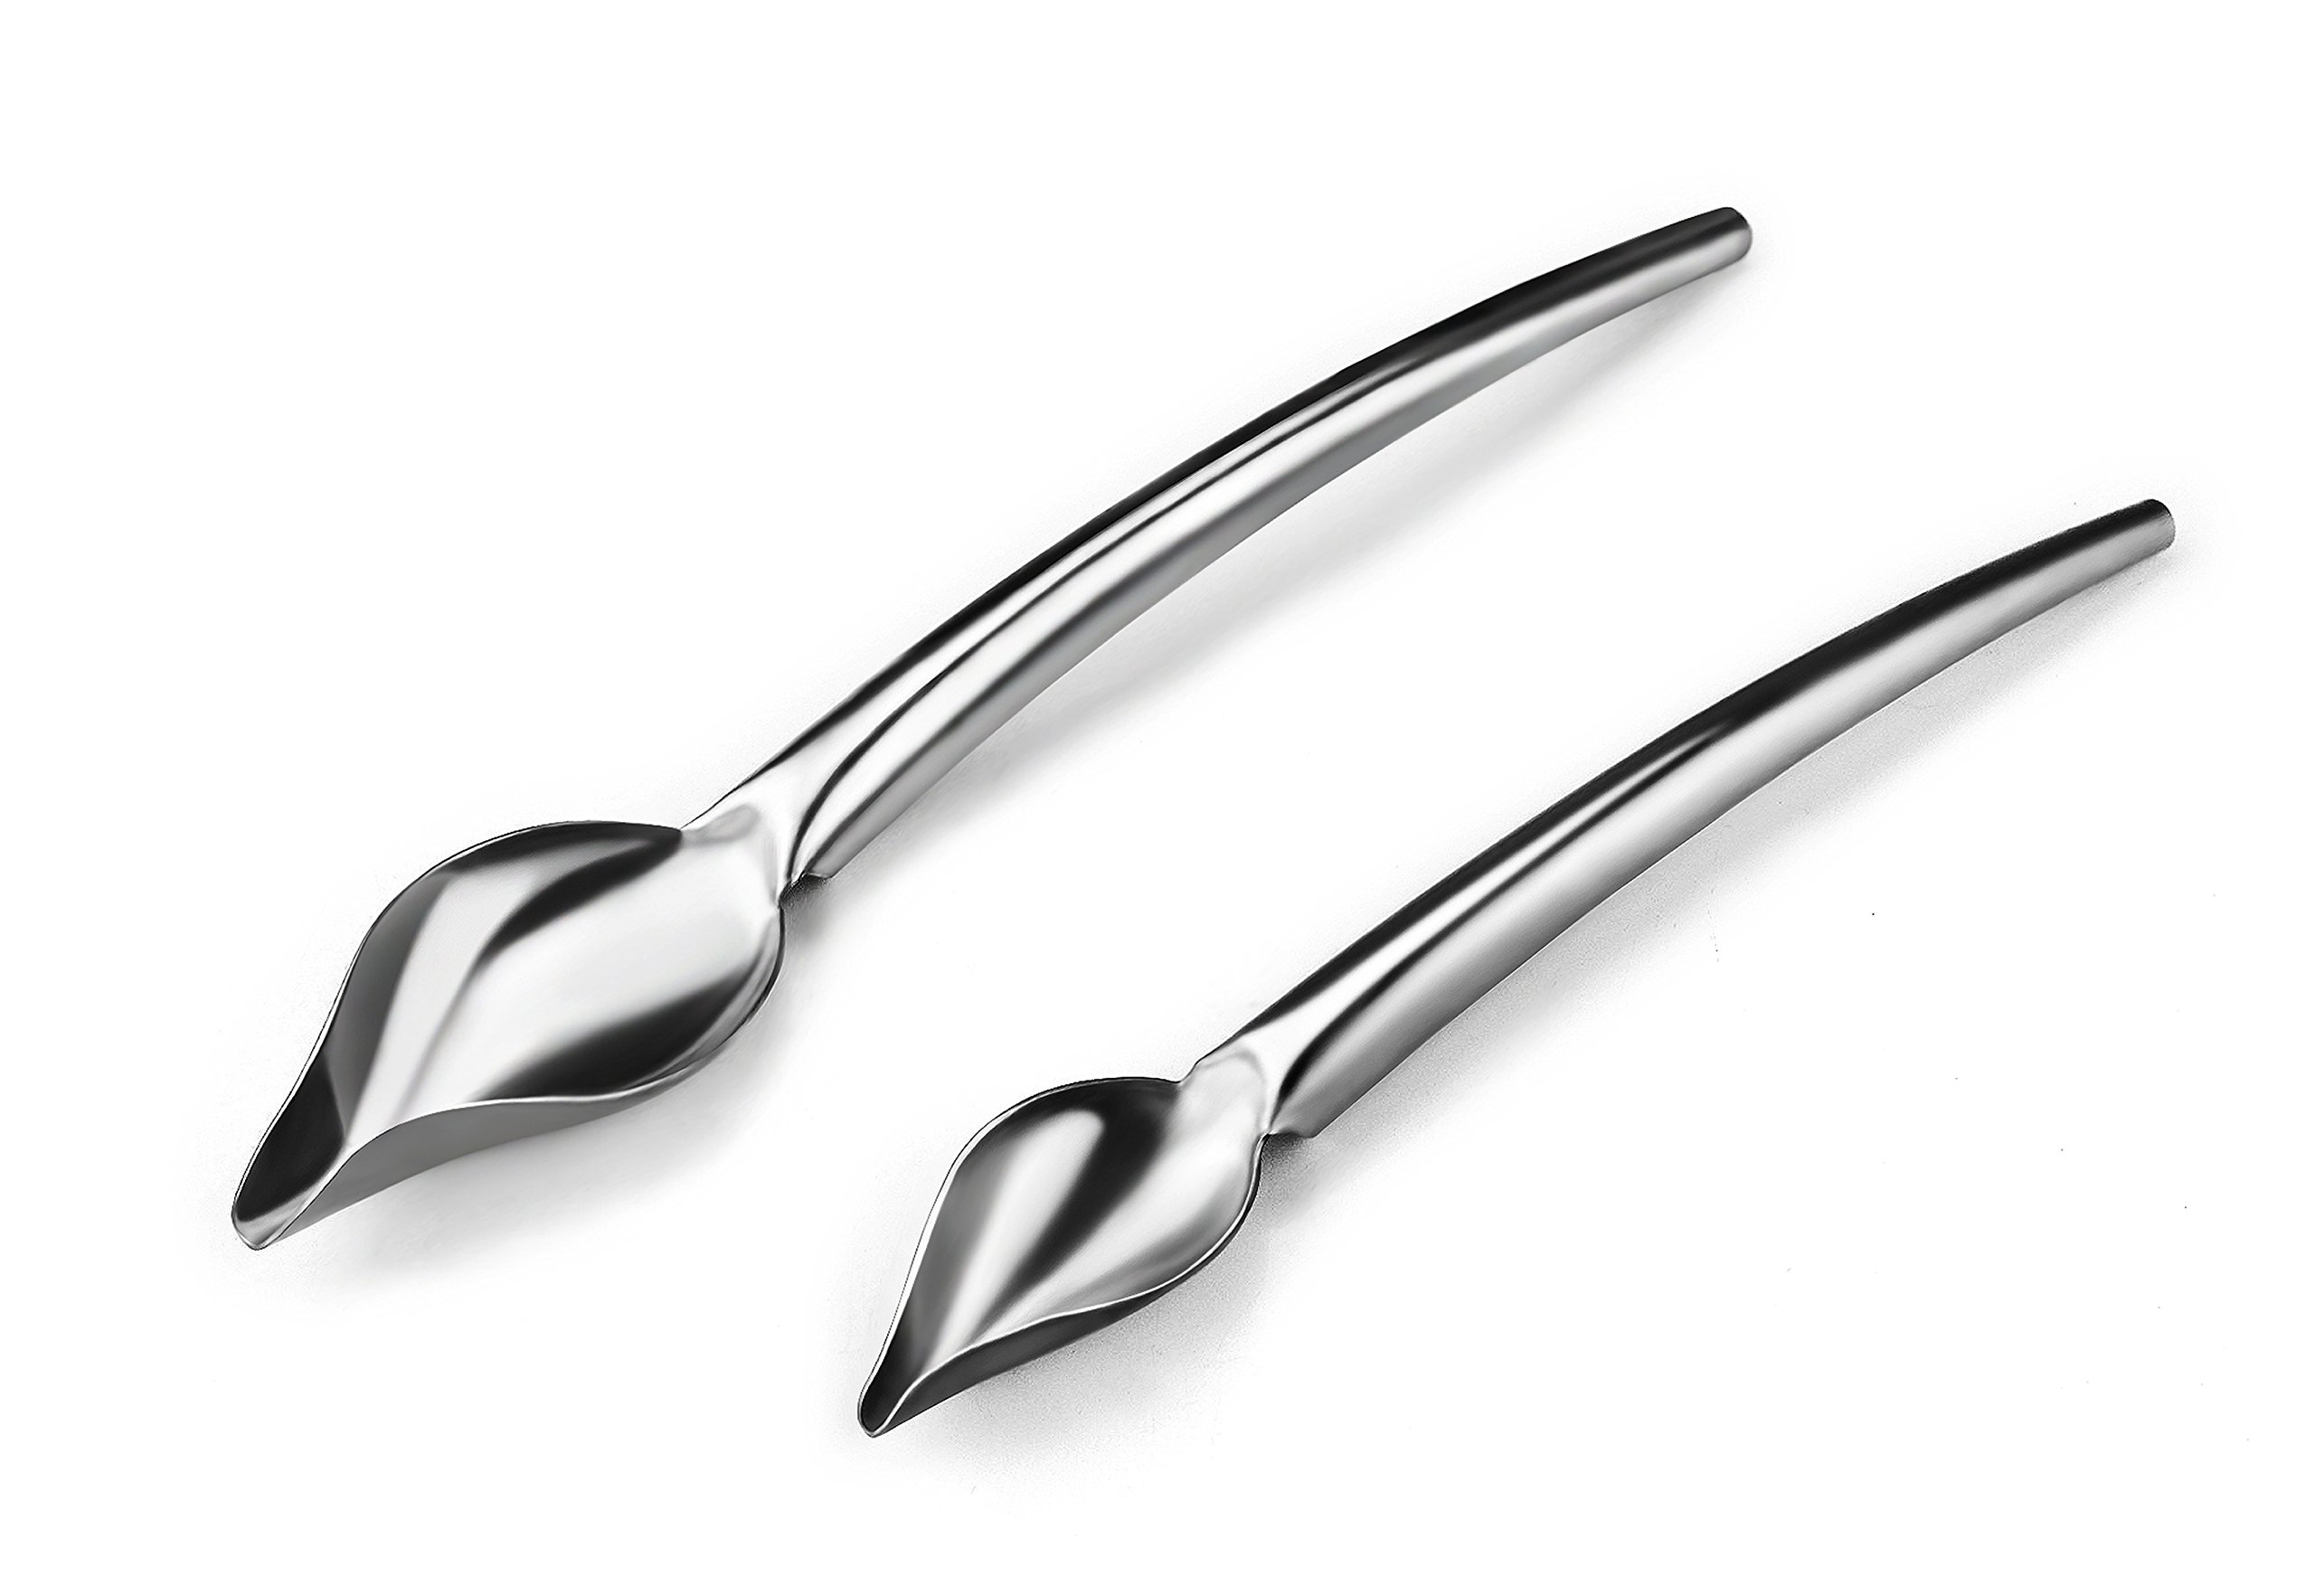 Dcrt Deco Spoon Multi-use Precision Chef Culinary Drawing Spoons for Decorating Plates, set of 2 by Dcrt (Image #1)